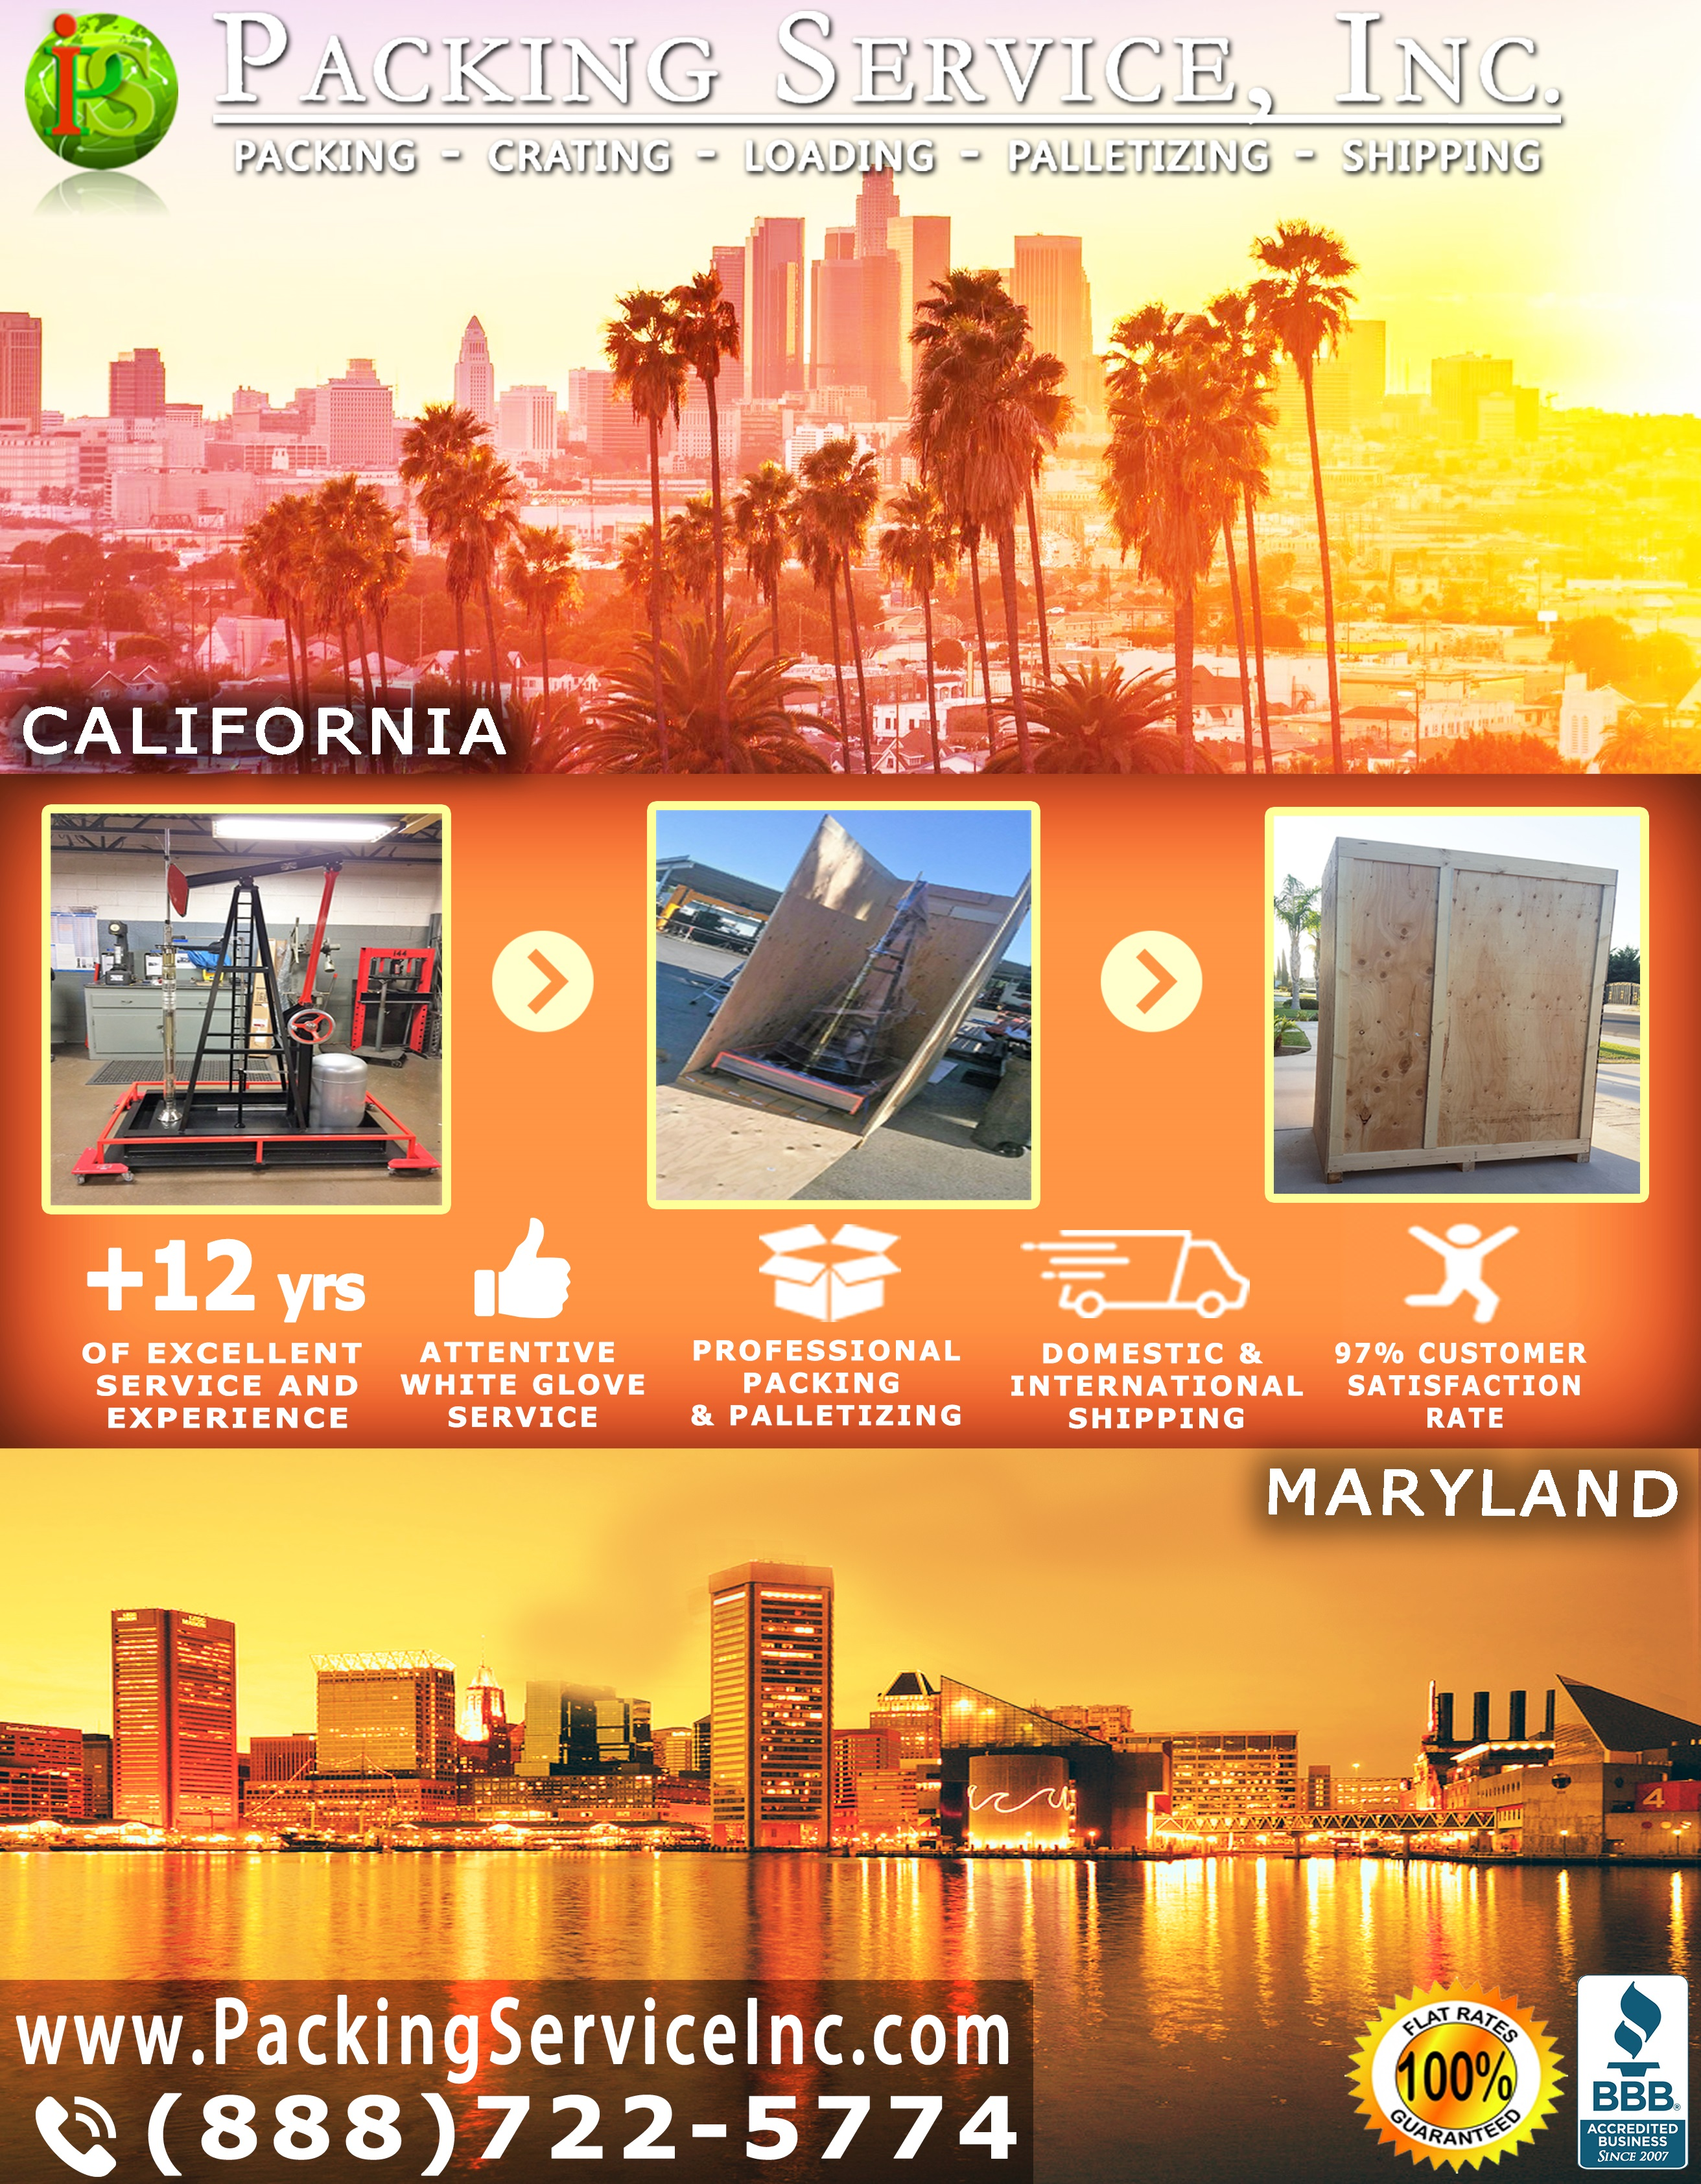 crating-machinery-and-shipping-services-from-maryland-to-california-with-packing-service-inc-551